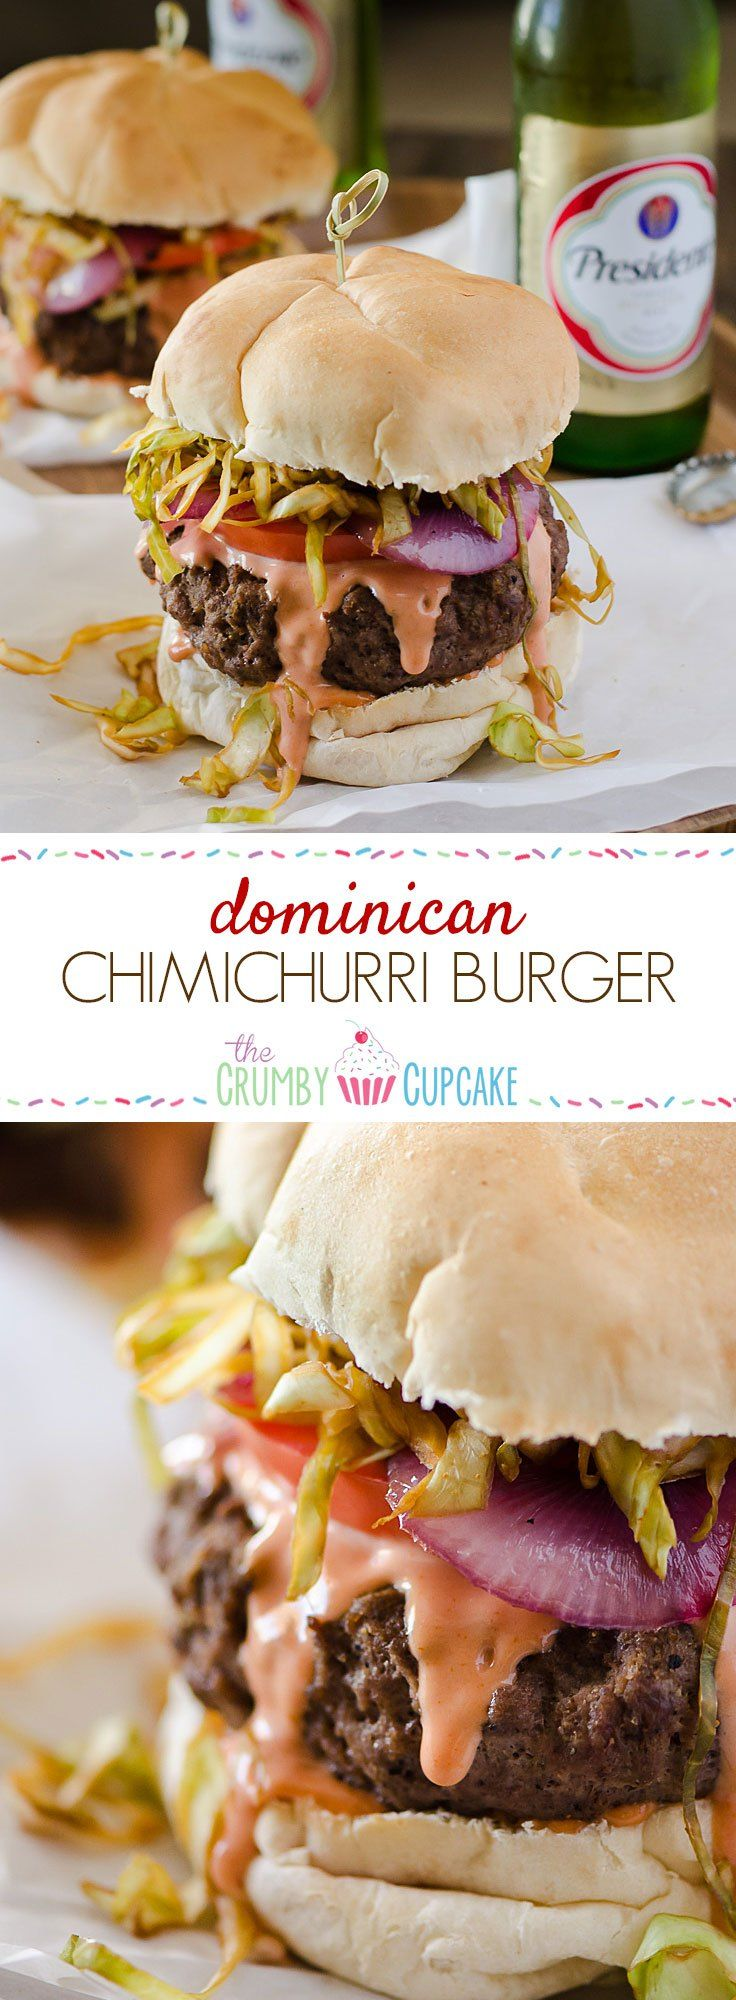 Mr. Crumby's Kitchen: Dominican Chimichurri Burger #SundaySupper